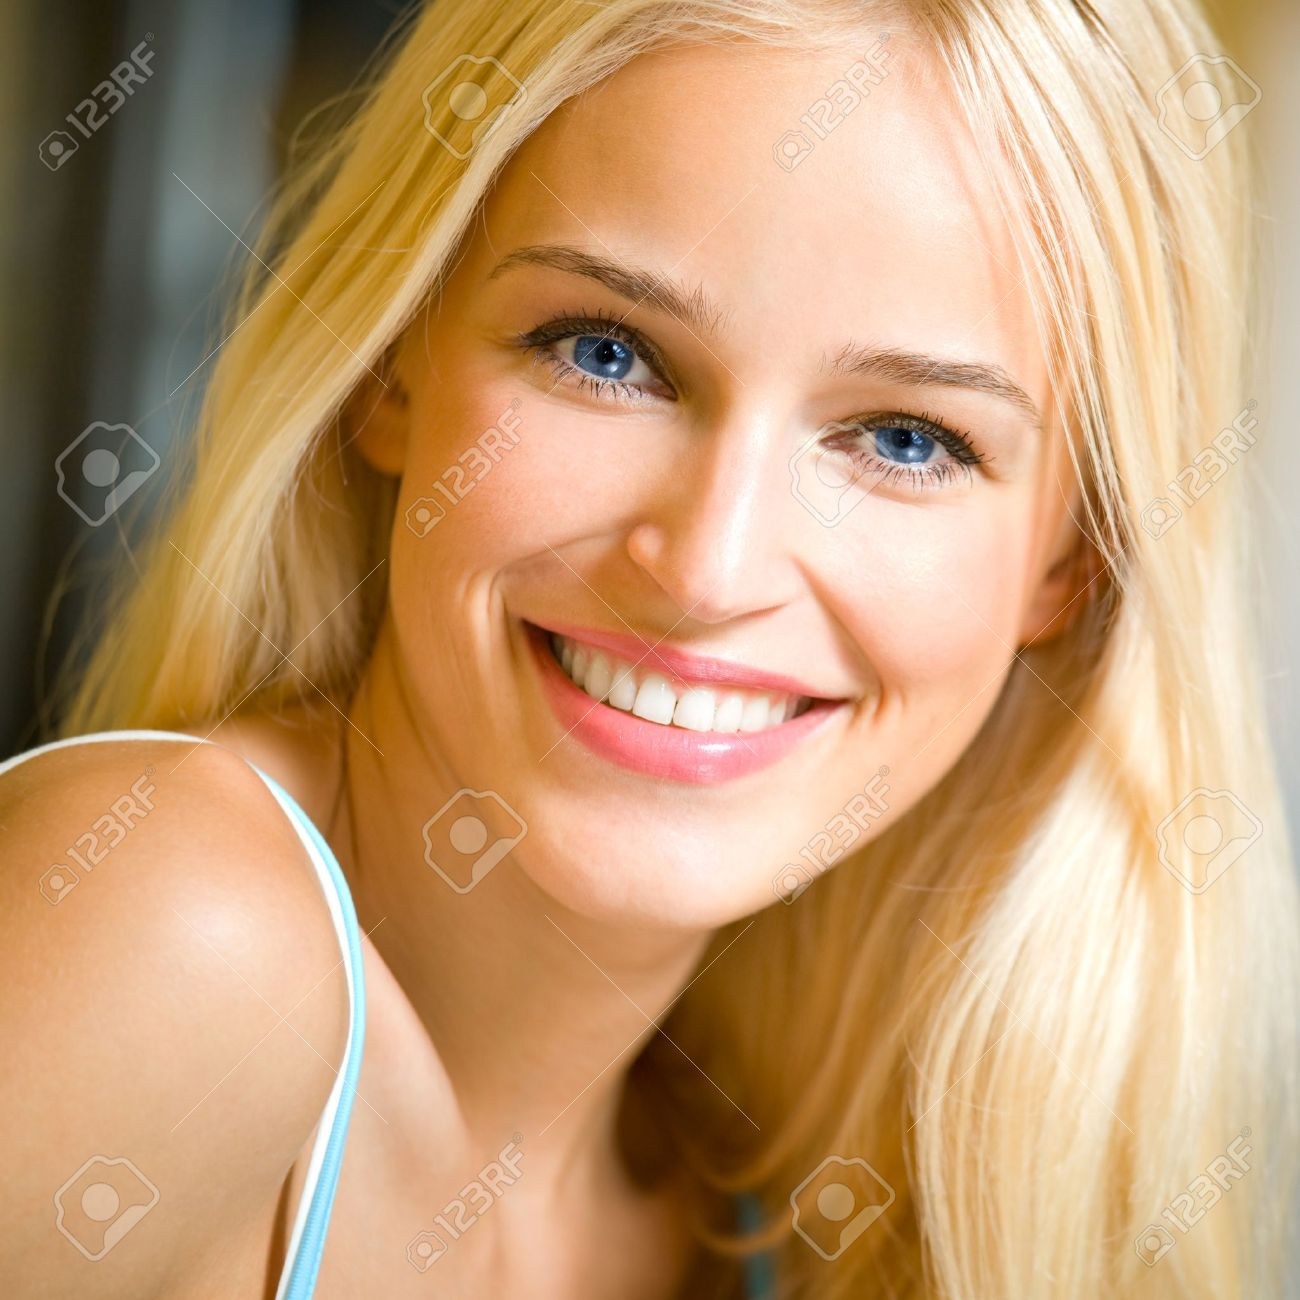 Belle Blond portrait of happy cheerful smiling young beautiful blond woman